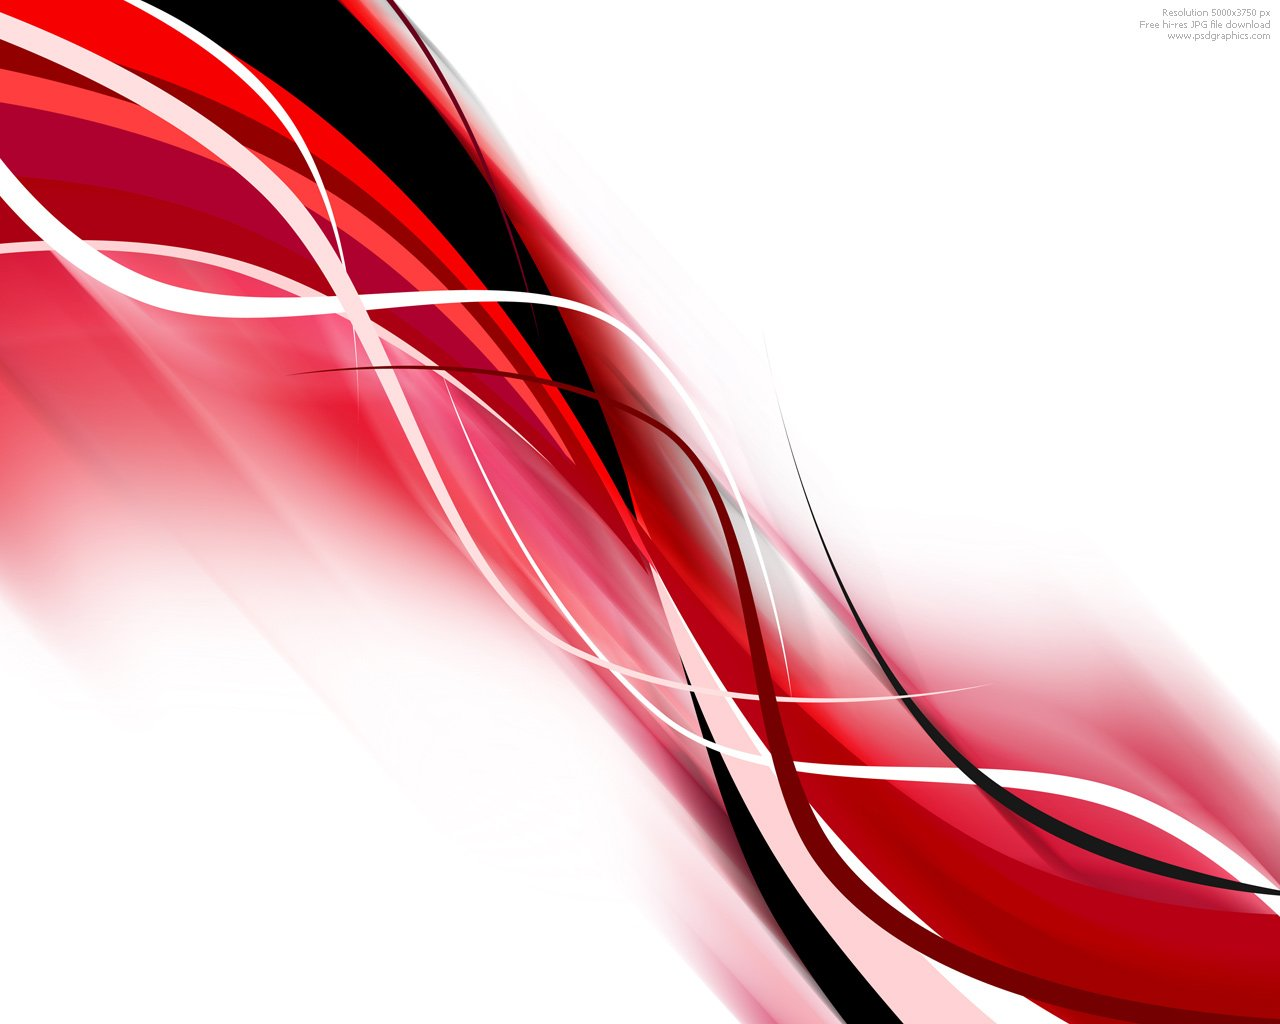 Red Black White Abstract Wallpaper Wallpapersafari